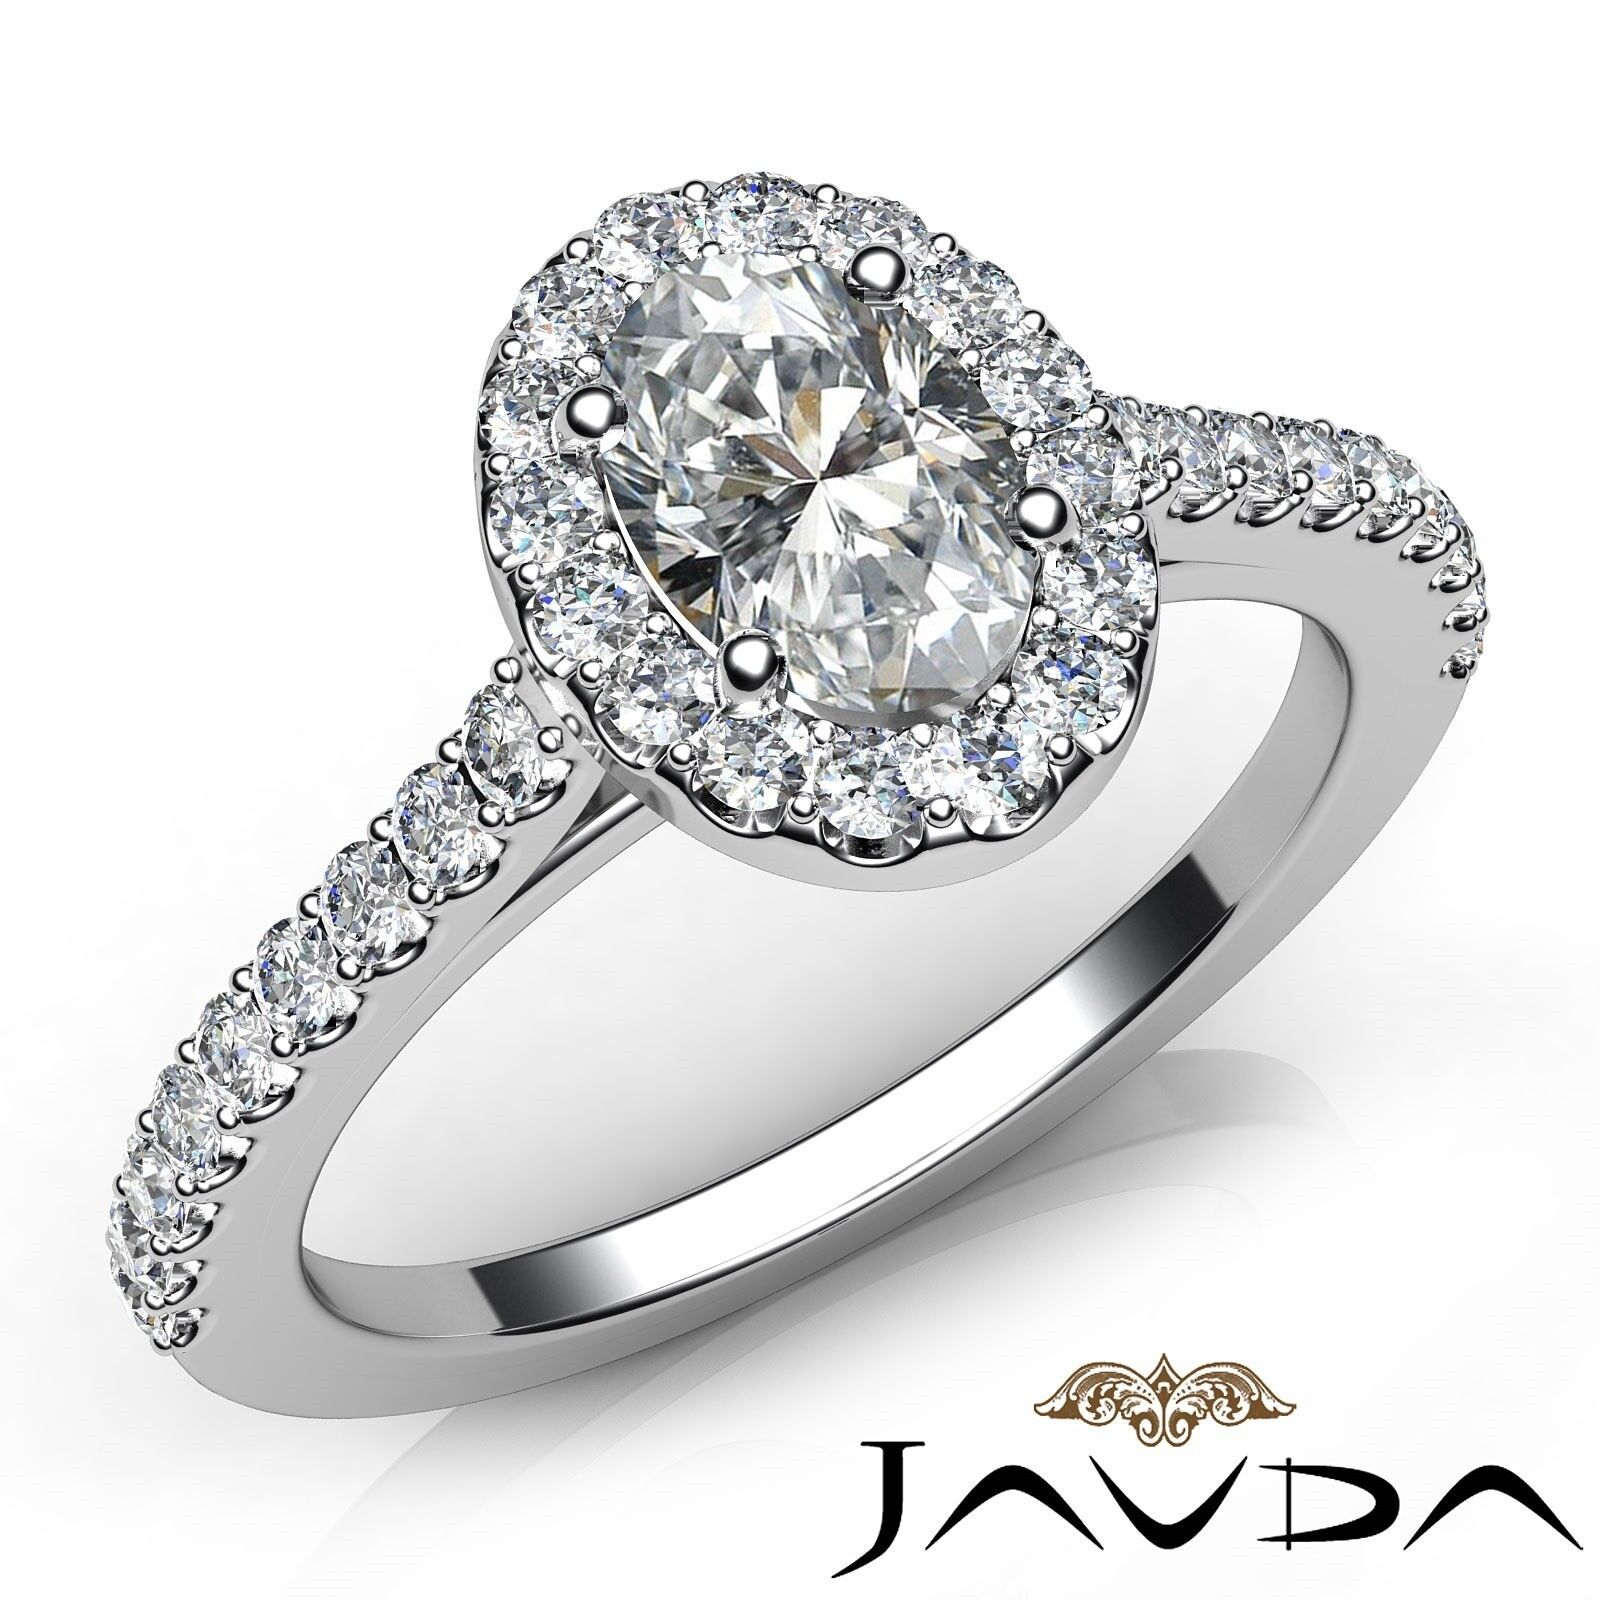 1.31ctw Comfort Fit Oval Diamond Engagement Ring GIA G-SI1 White Gold Women New